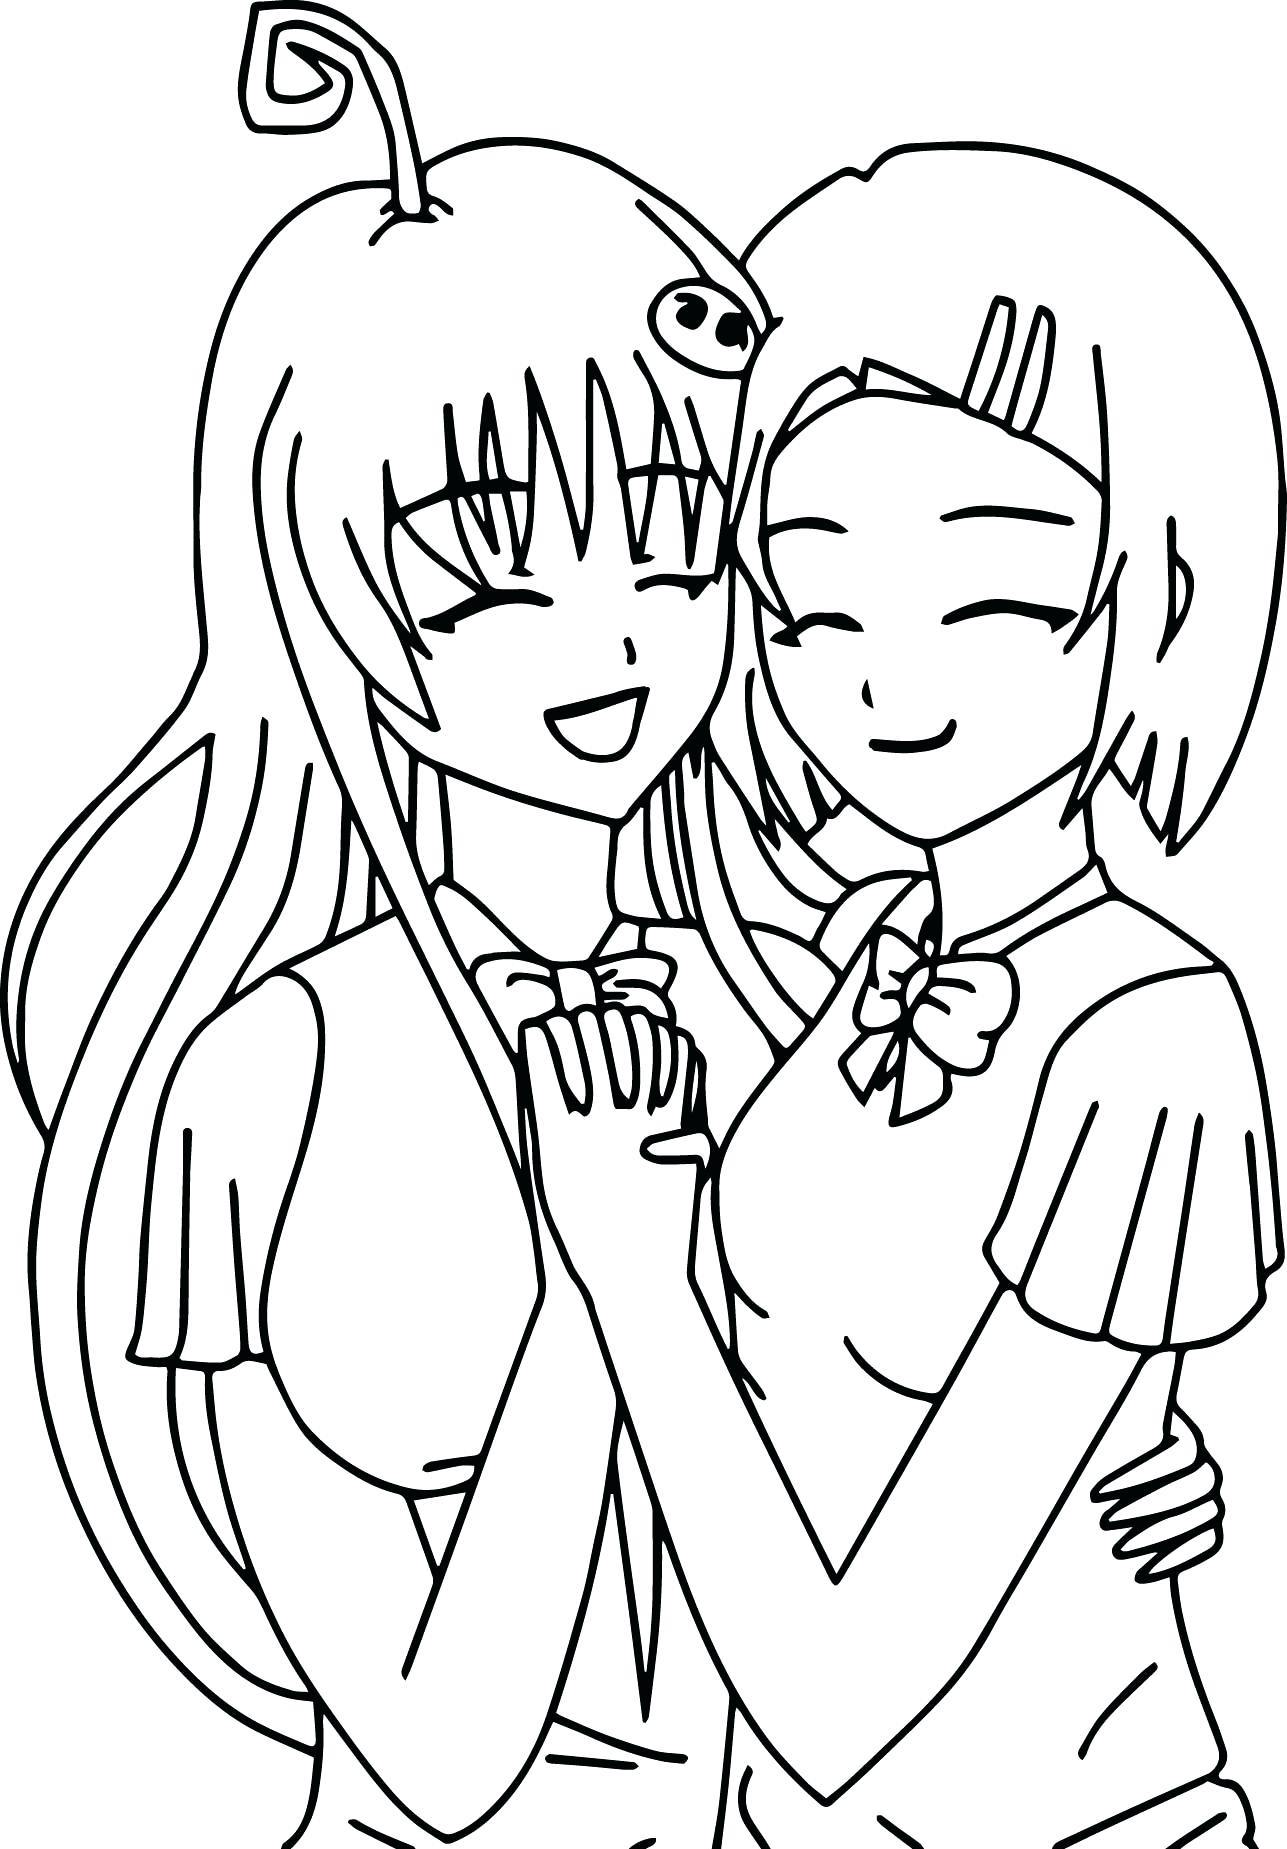 1287x1849 Exploit Best Friend Coloring Pages To Print Friends Forever Page